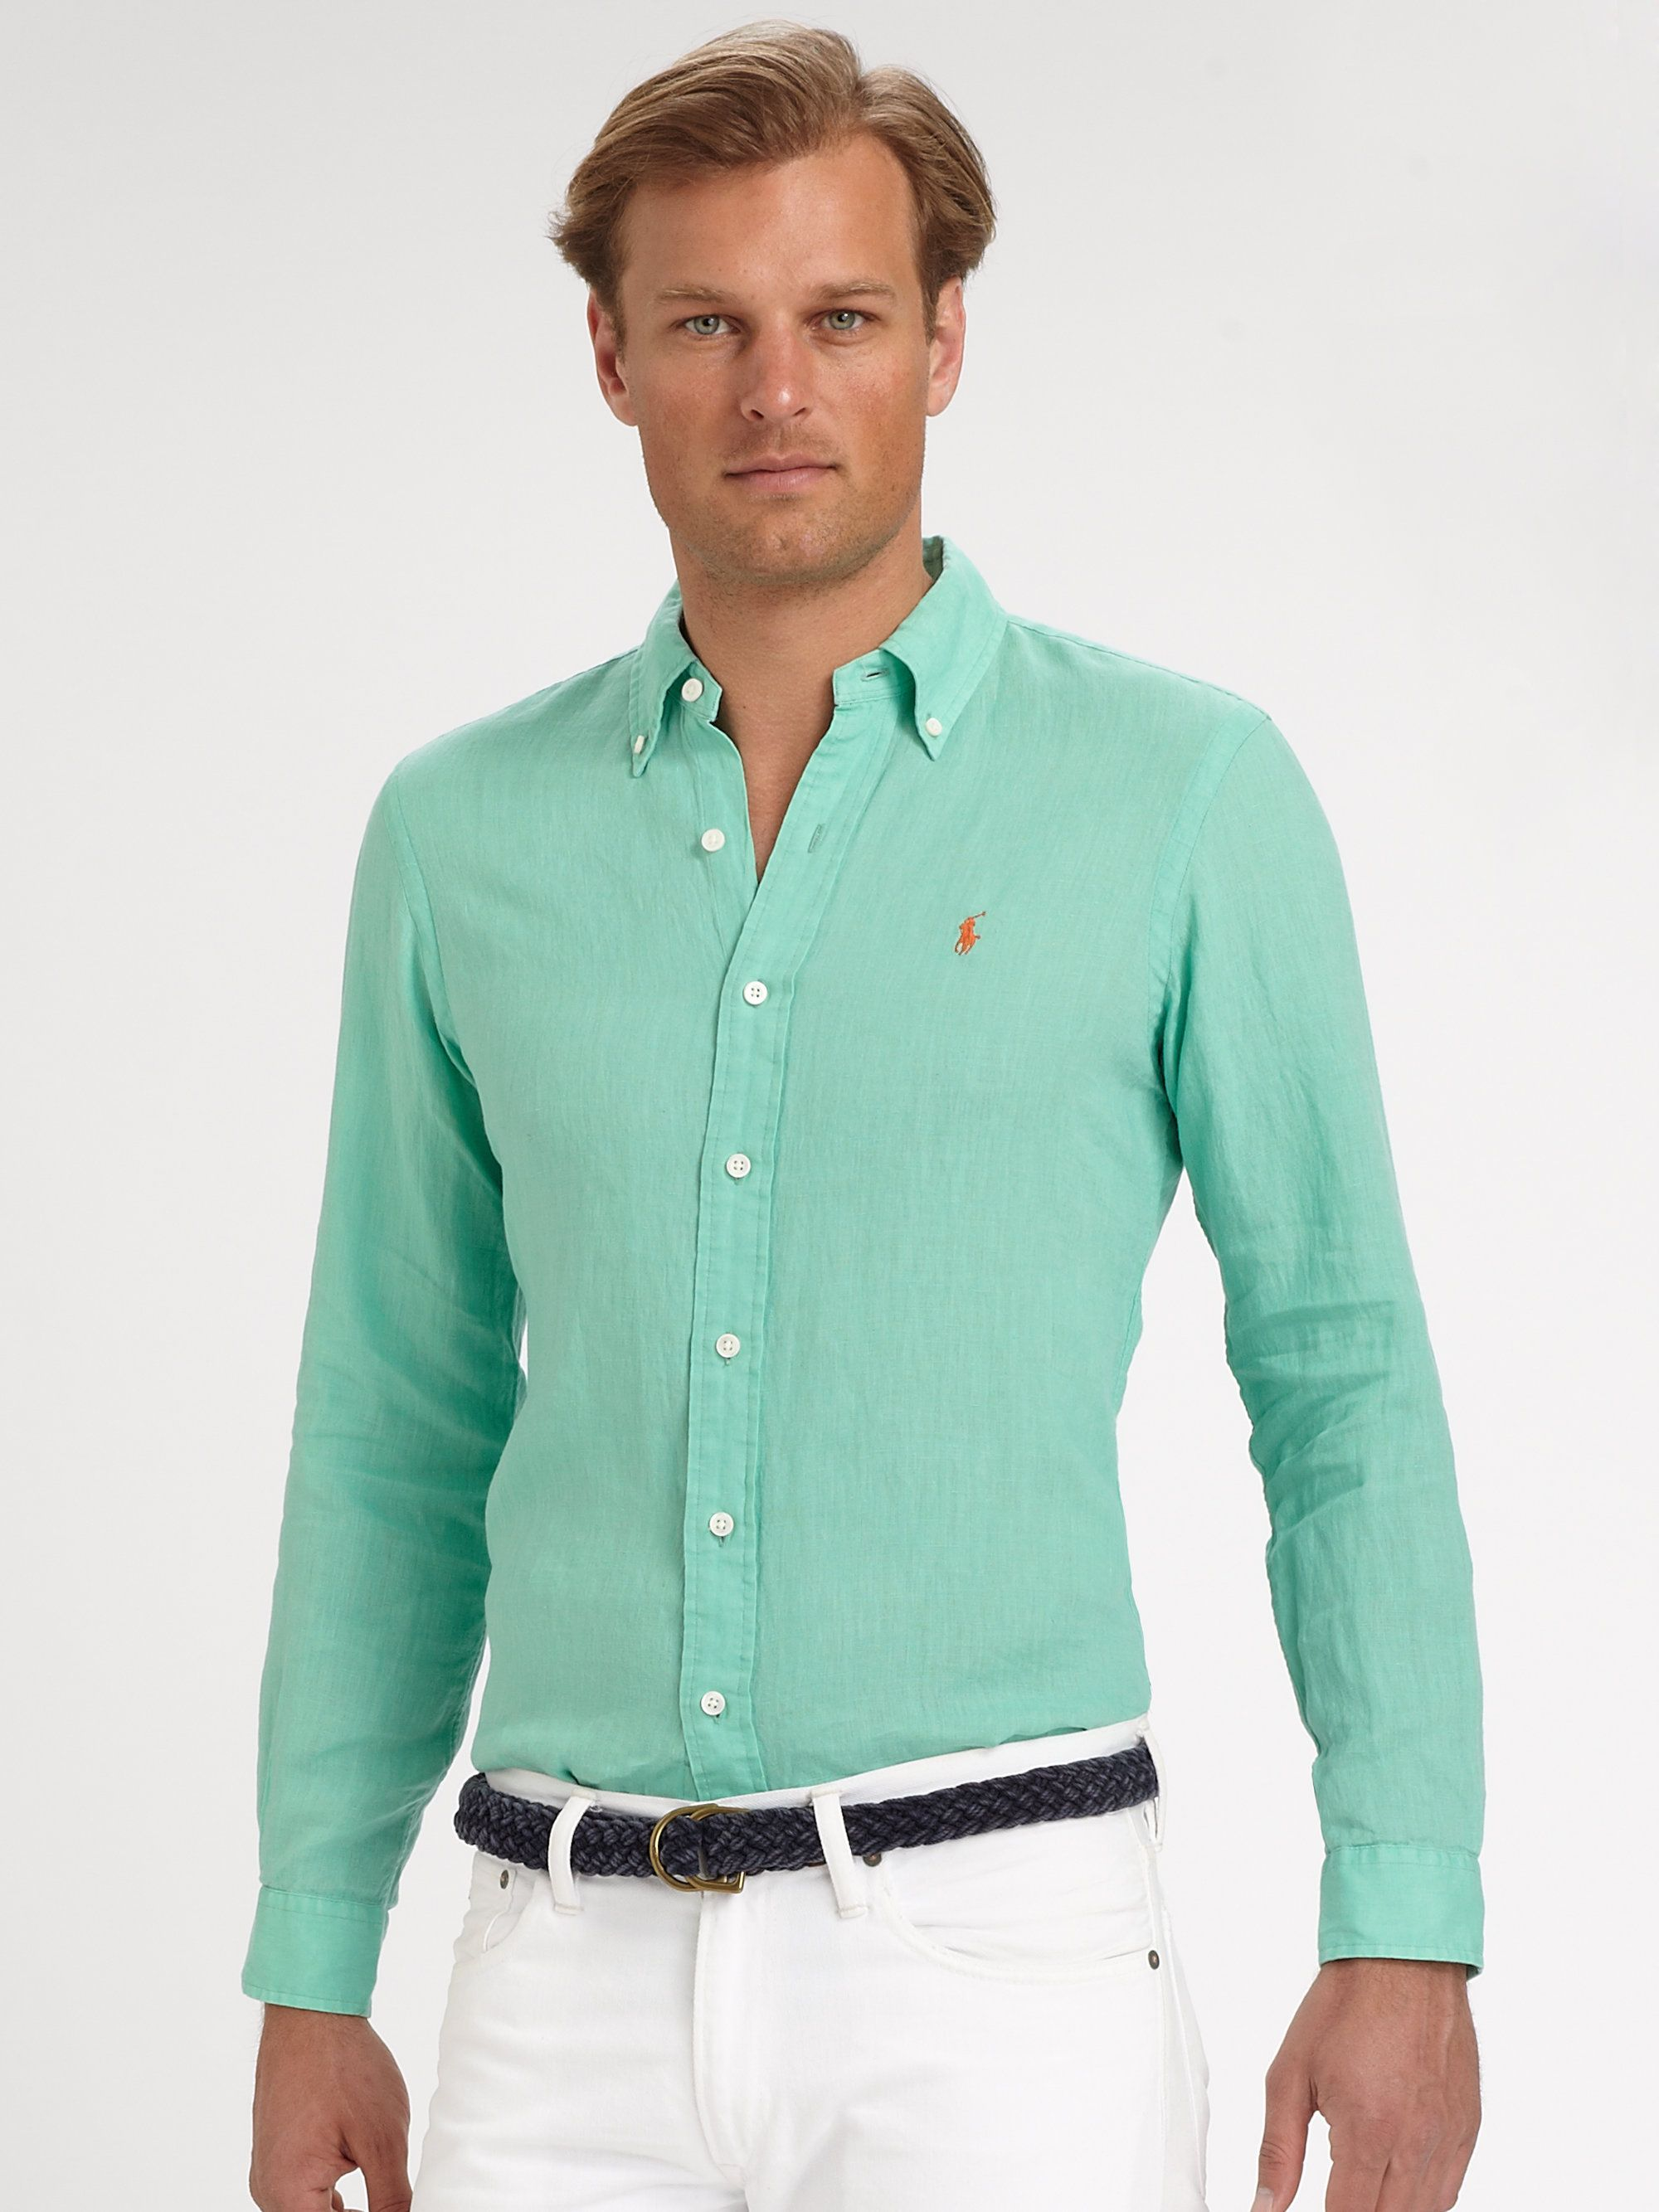 545da303ddc34 polo ralph lauren custom fit linen sport shirt in green for men lyst ...